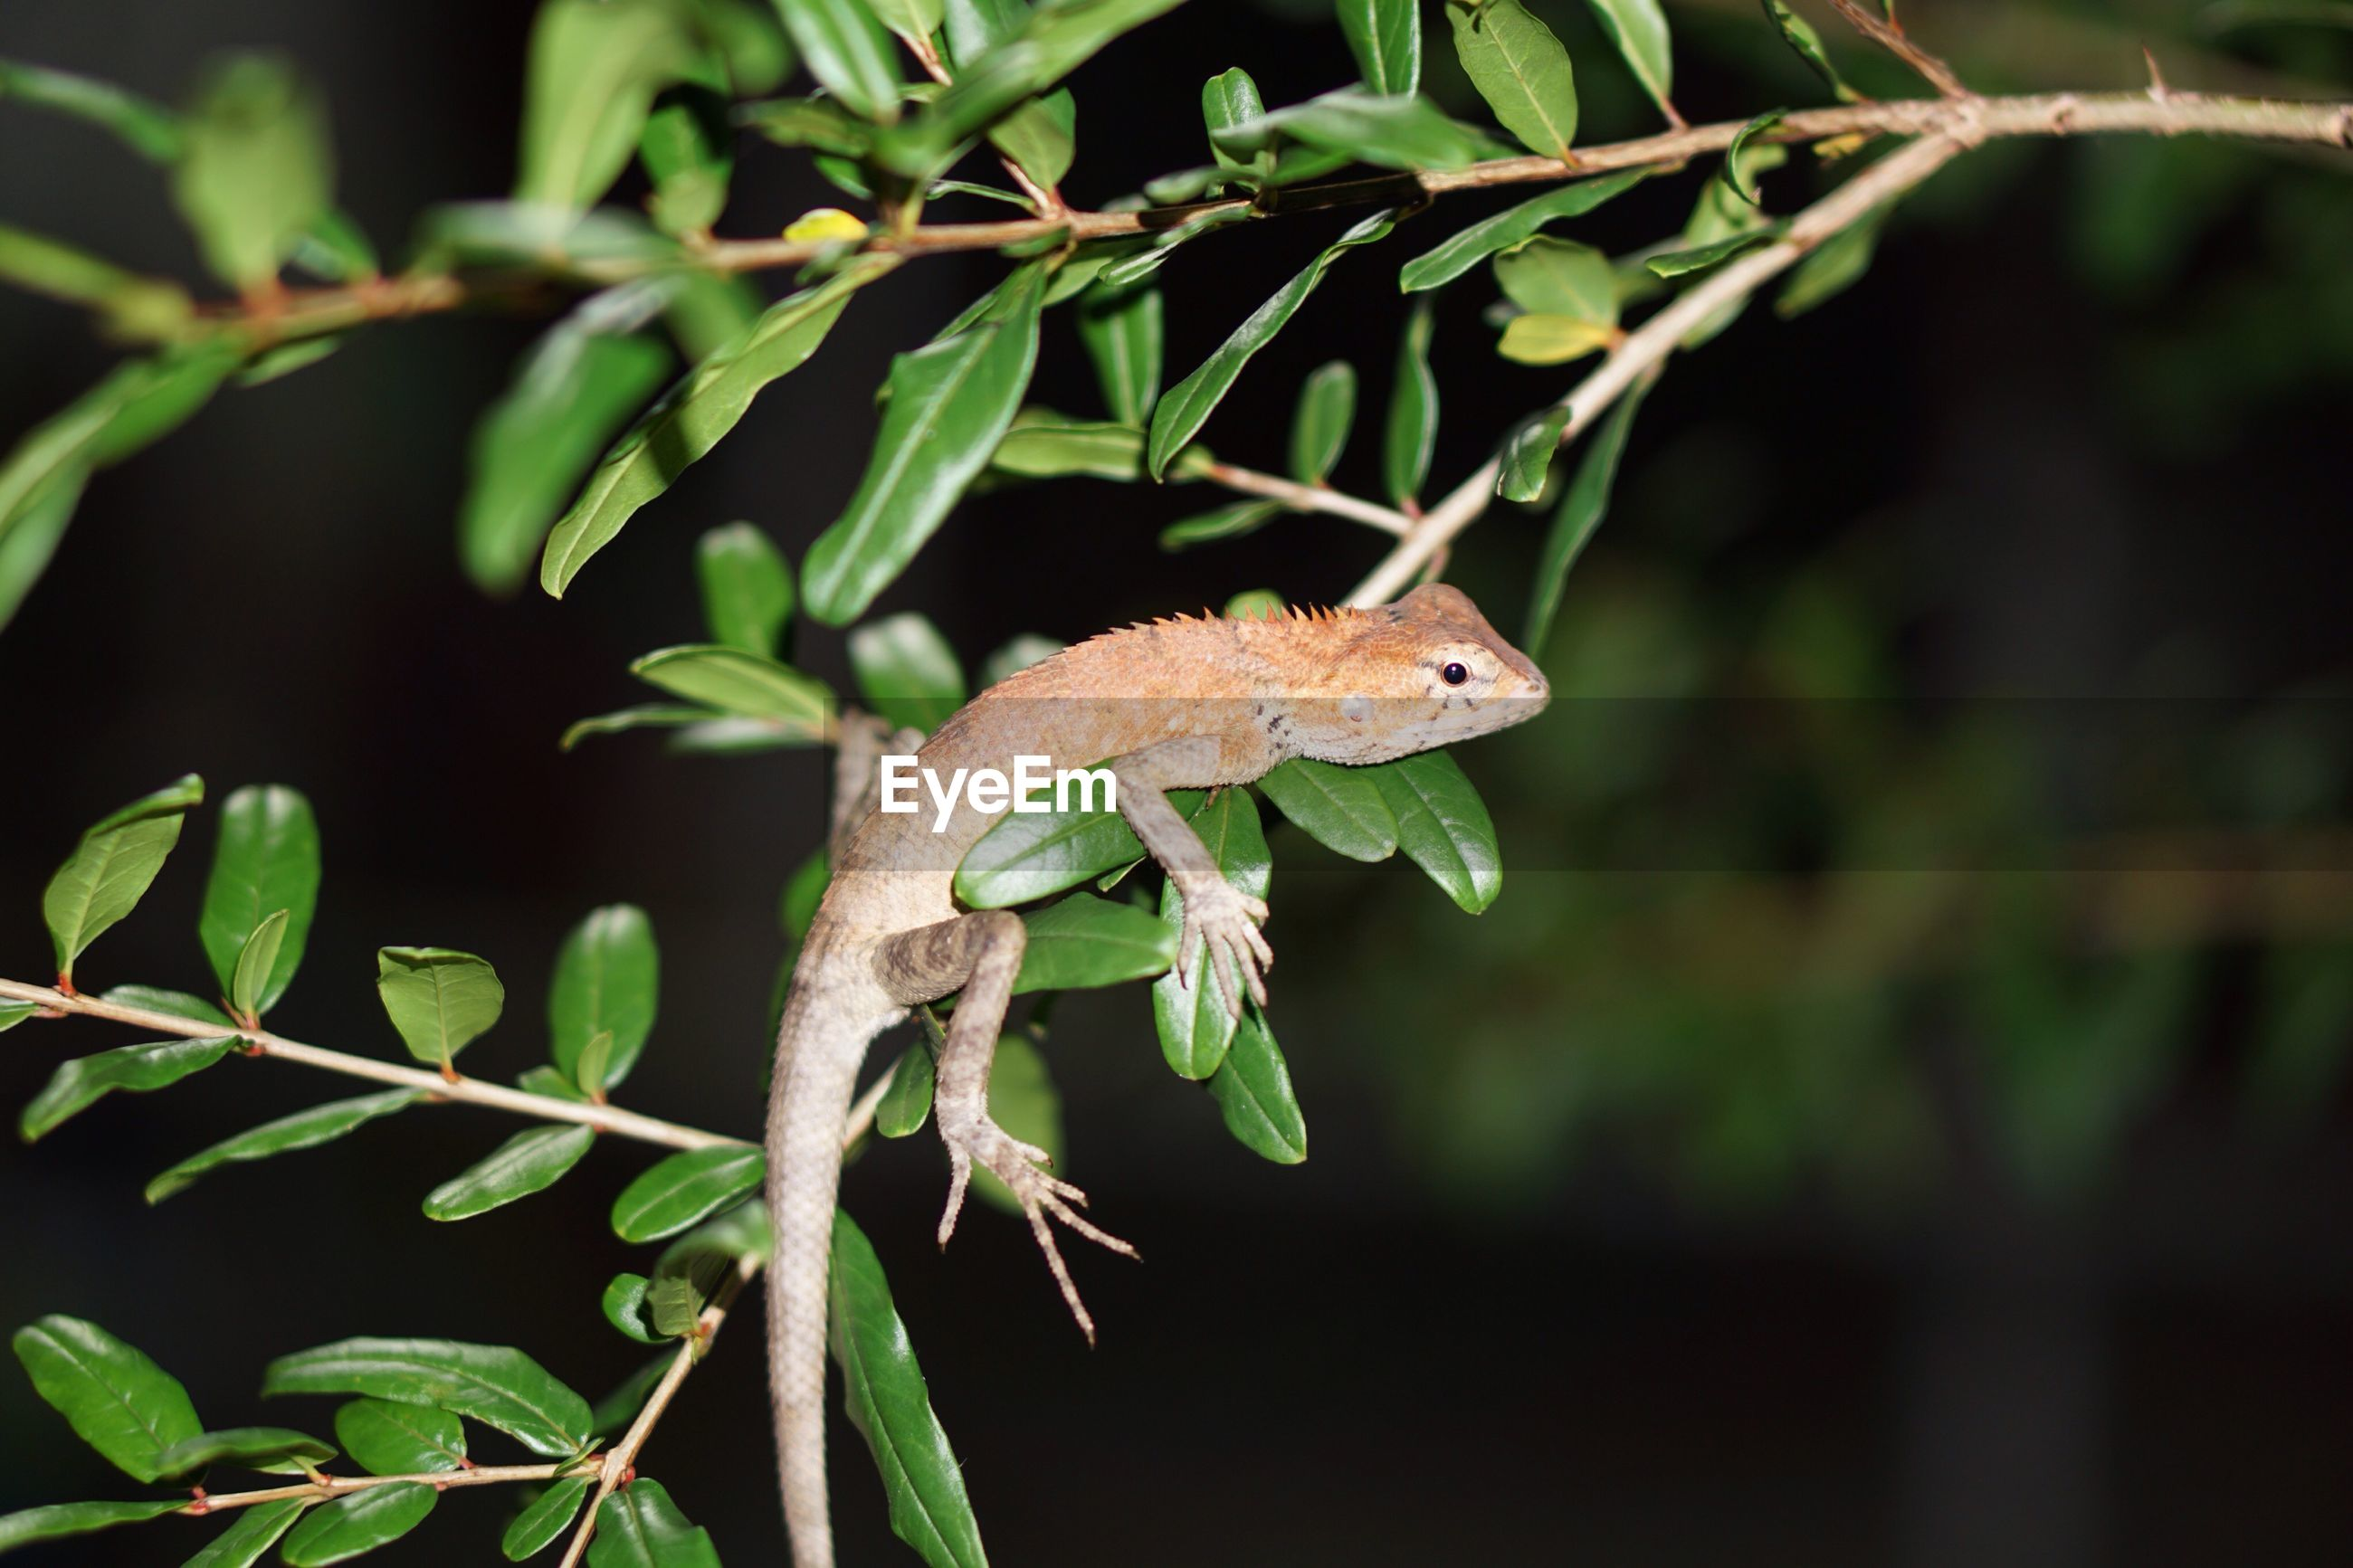 CLOSE-UP OF GREEN LIZARD ON TREE